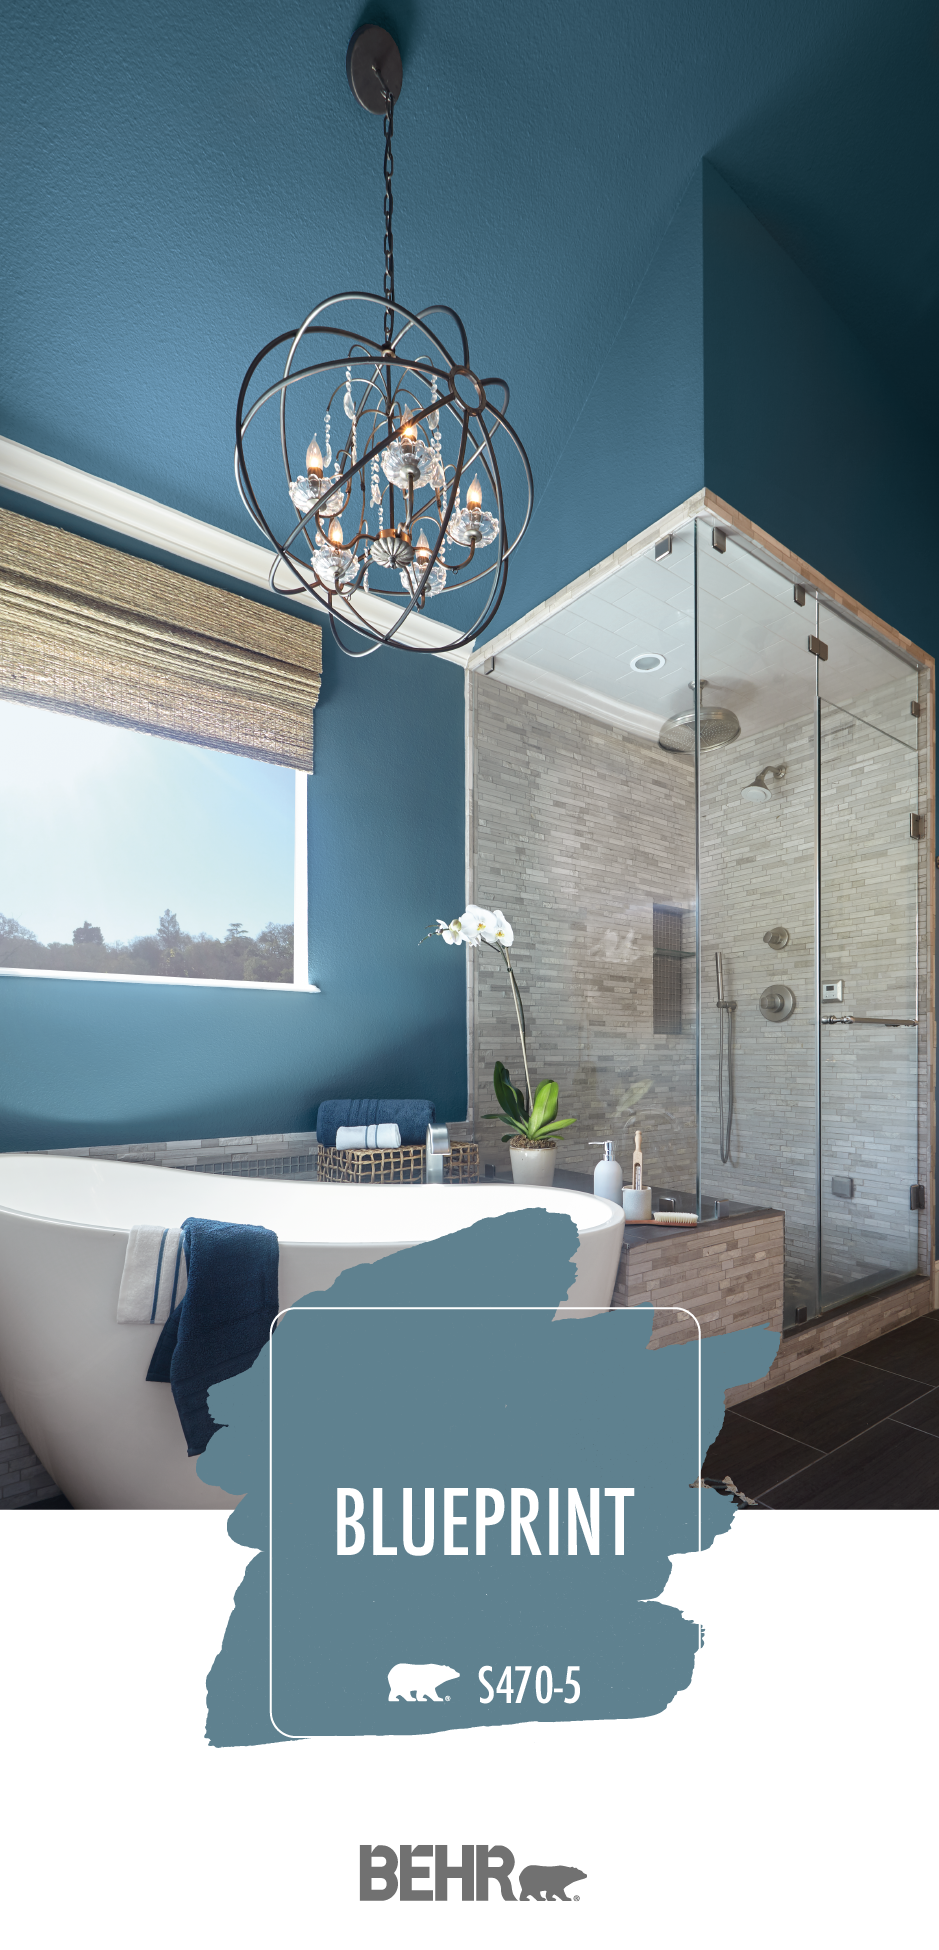 Kick back and relax in the bathroom of your dreams with - Behr color of the year ...